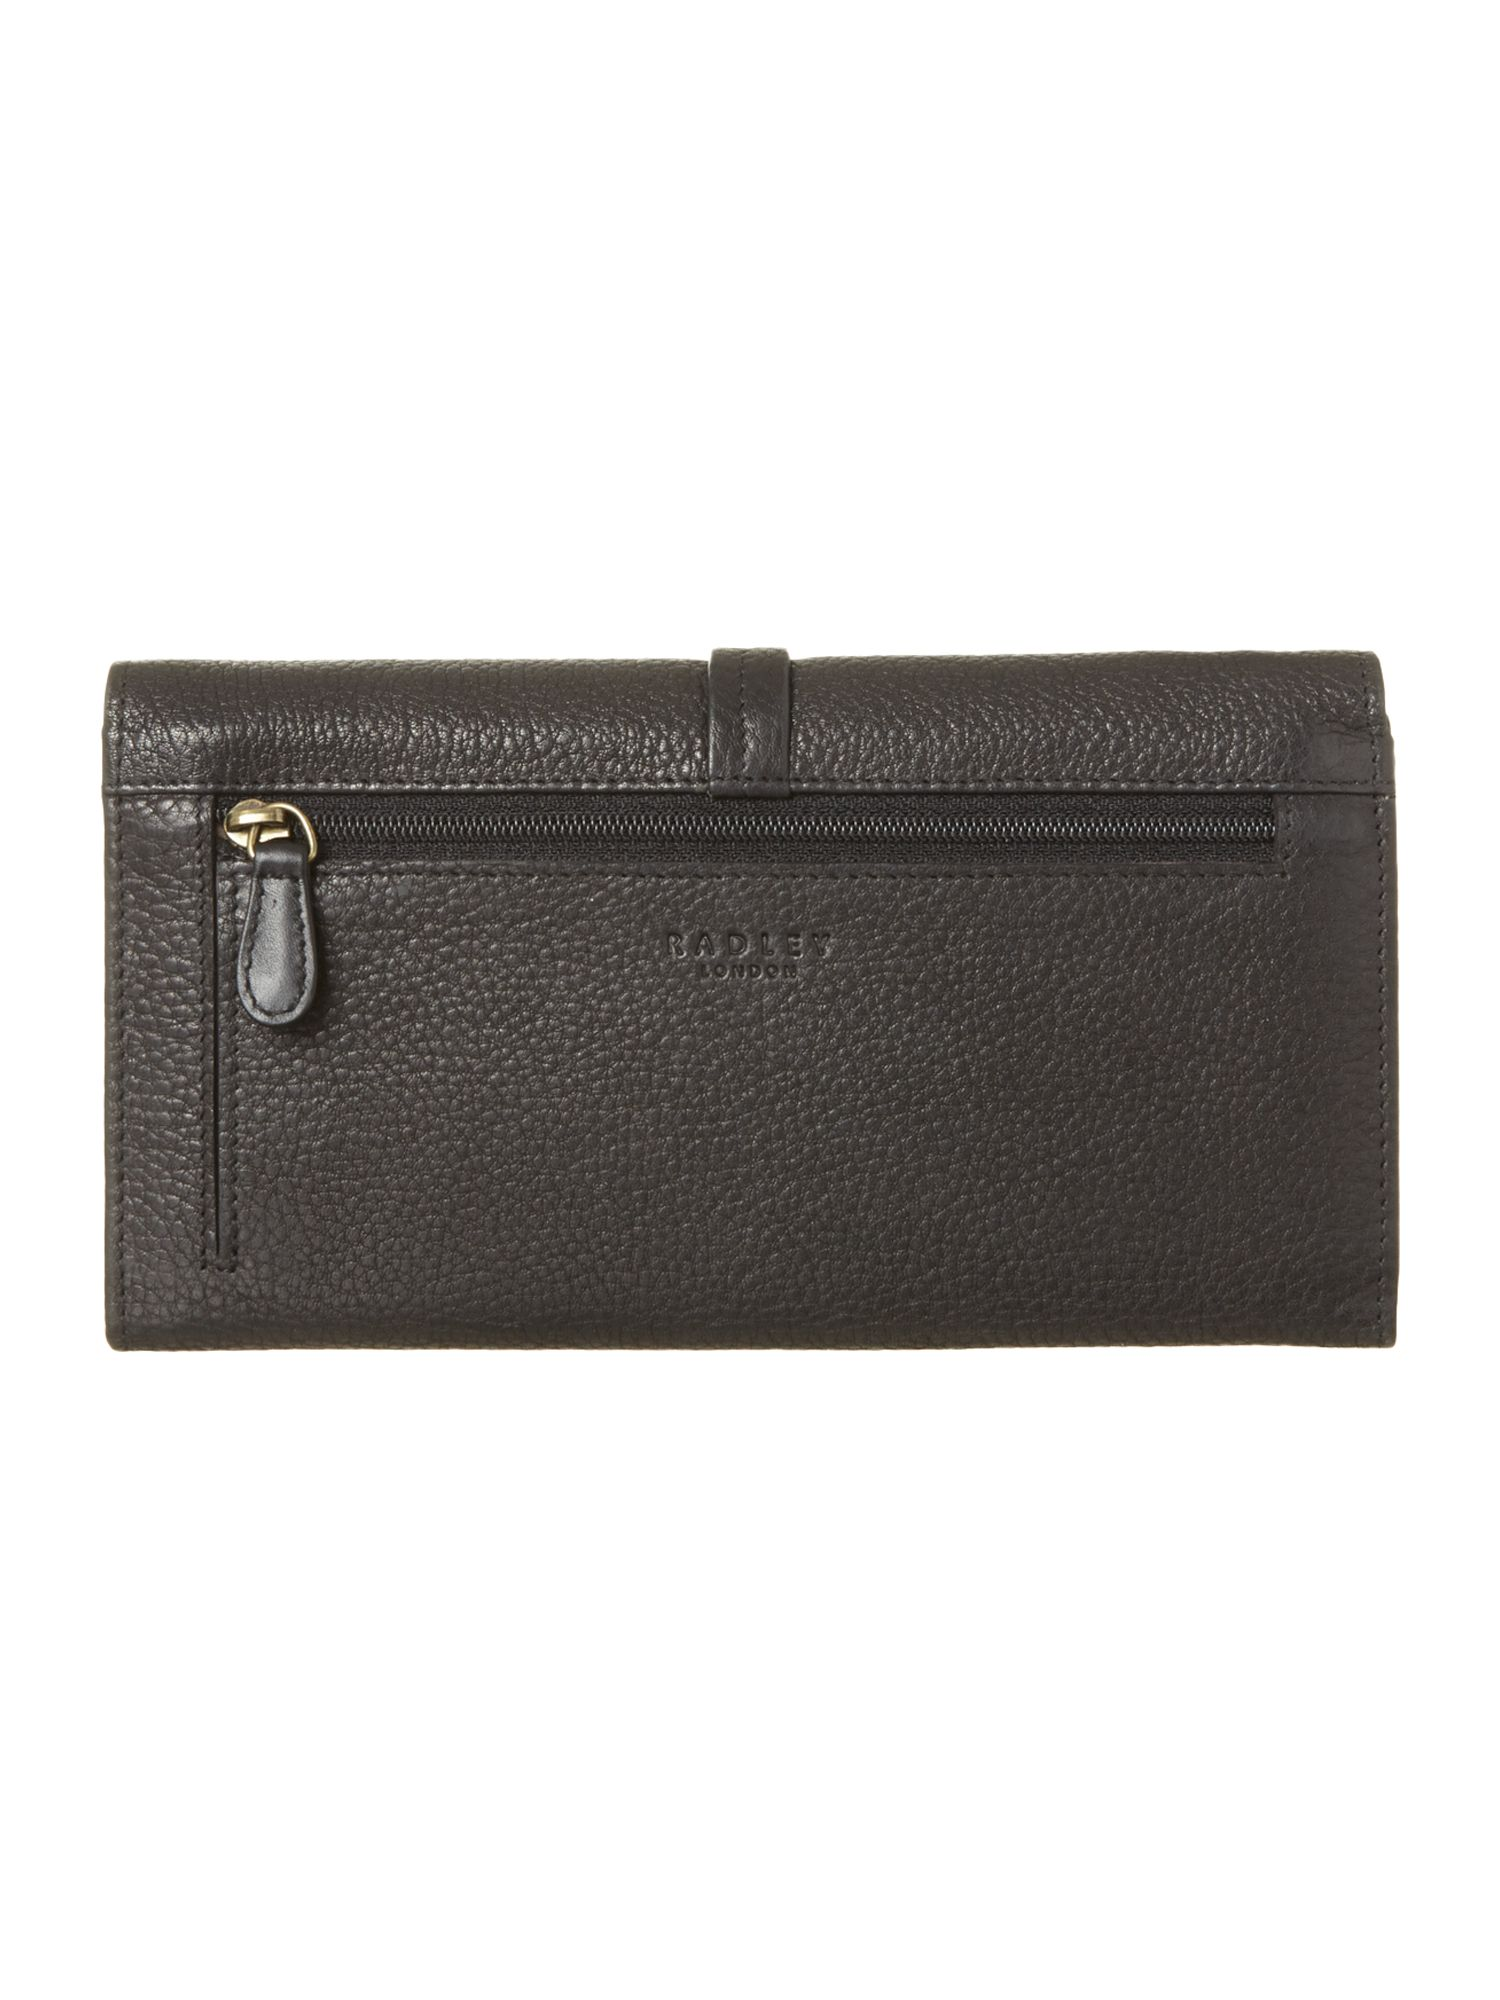 Grosvenor large black flap over purse